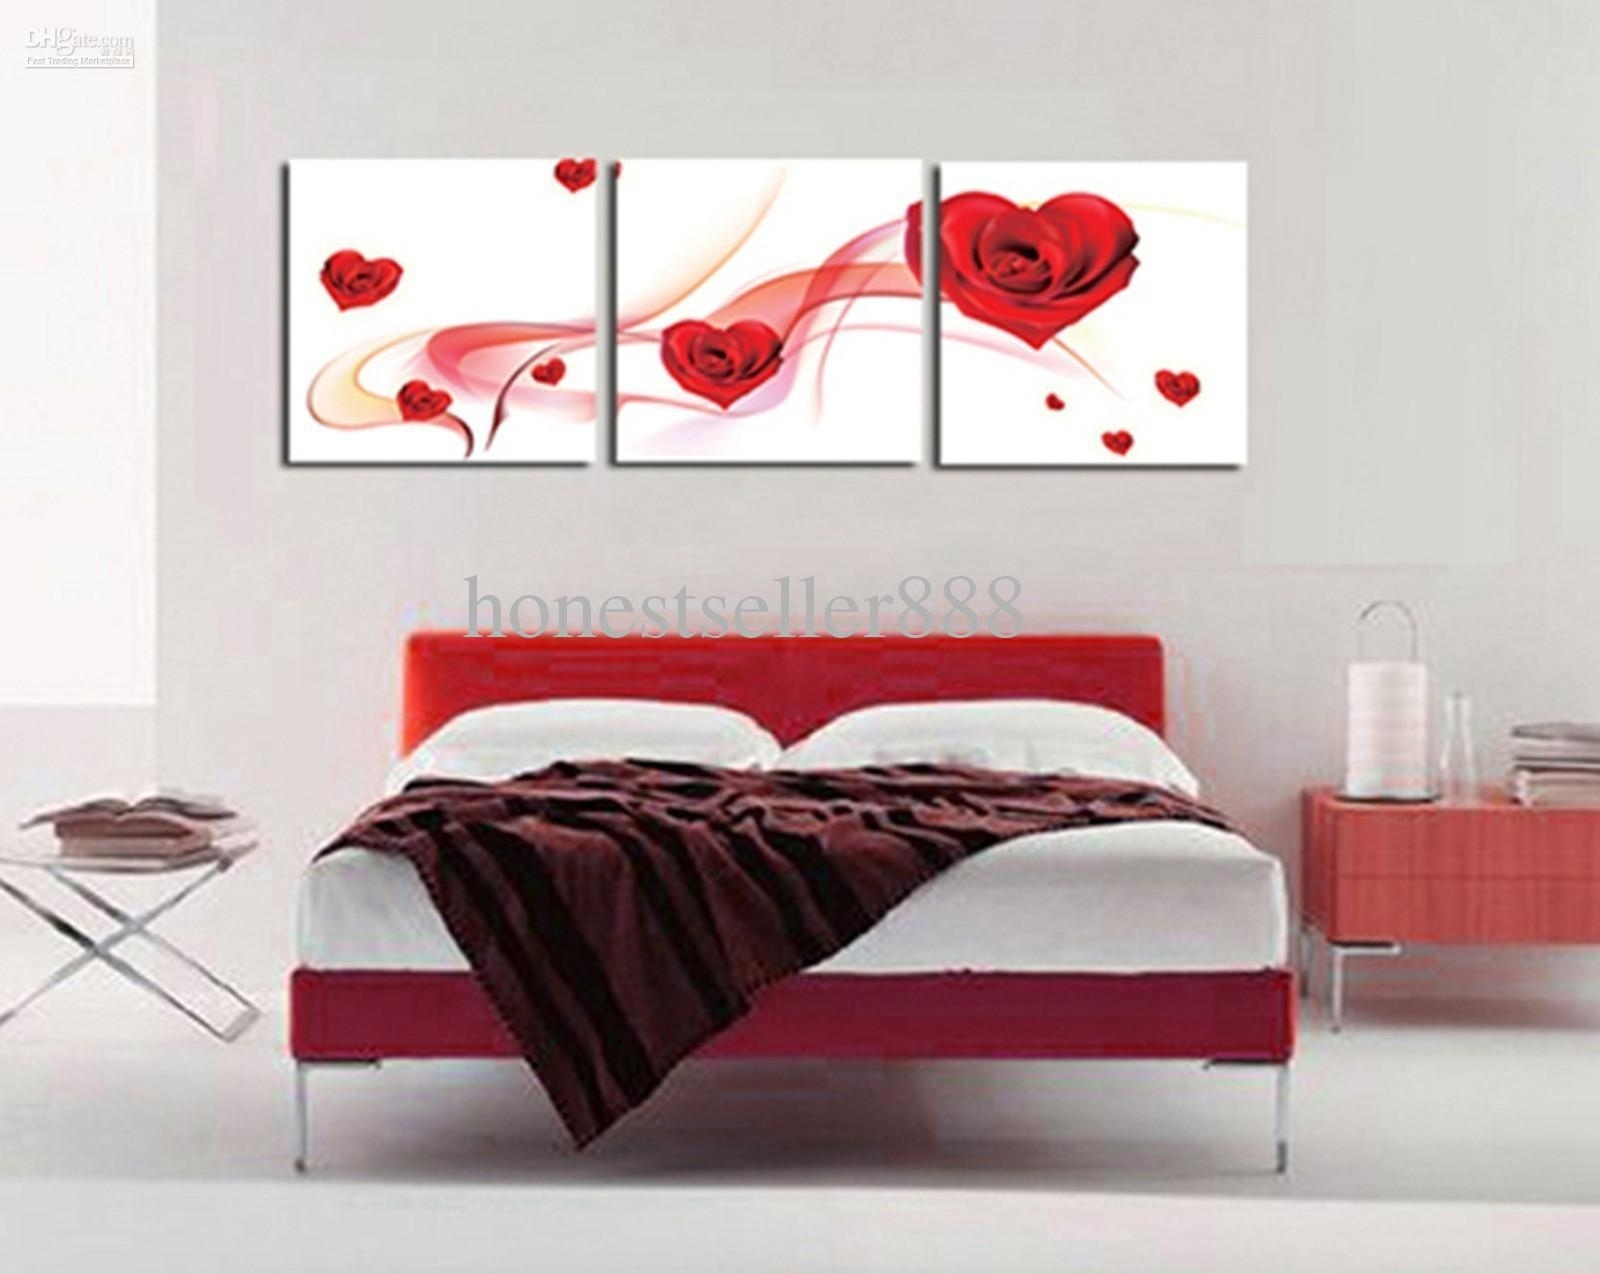 Bedroom : Master Bedroom Colors 3D Wall Art Affordable Wall Art Intended For 2018 Affordable Abstract Wall Art (View 12 of 20)